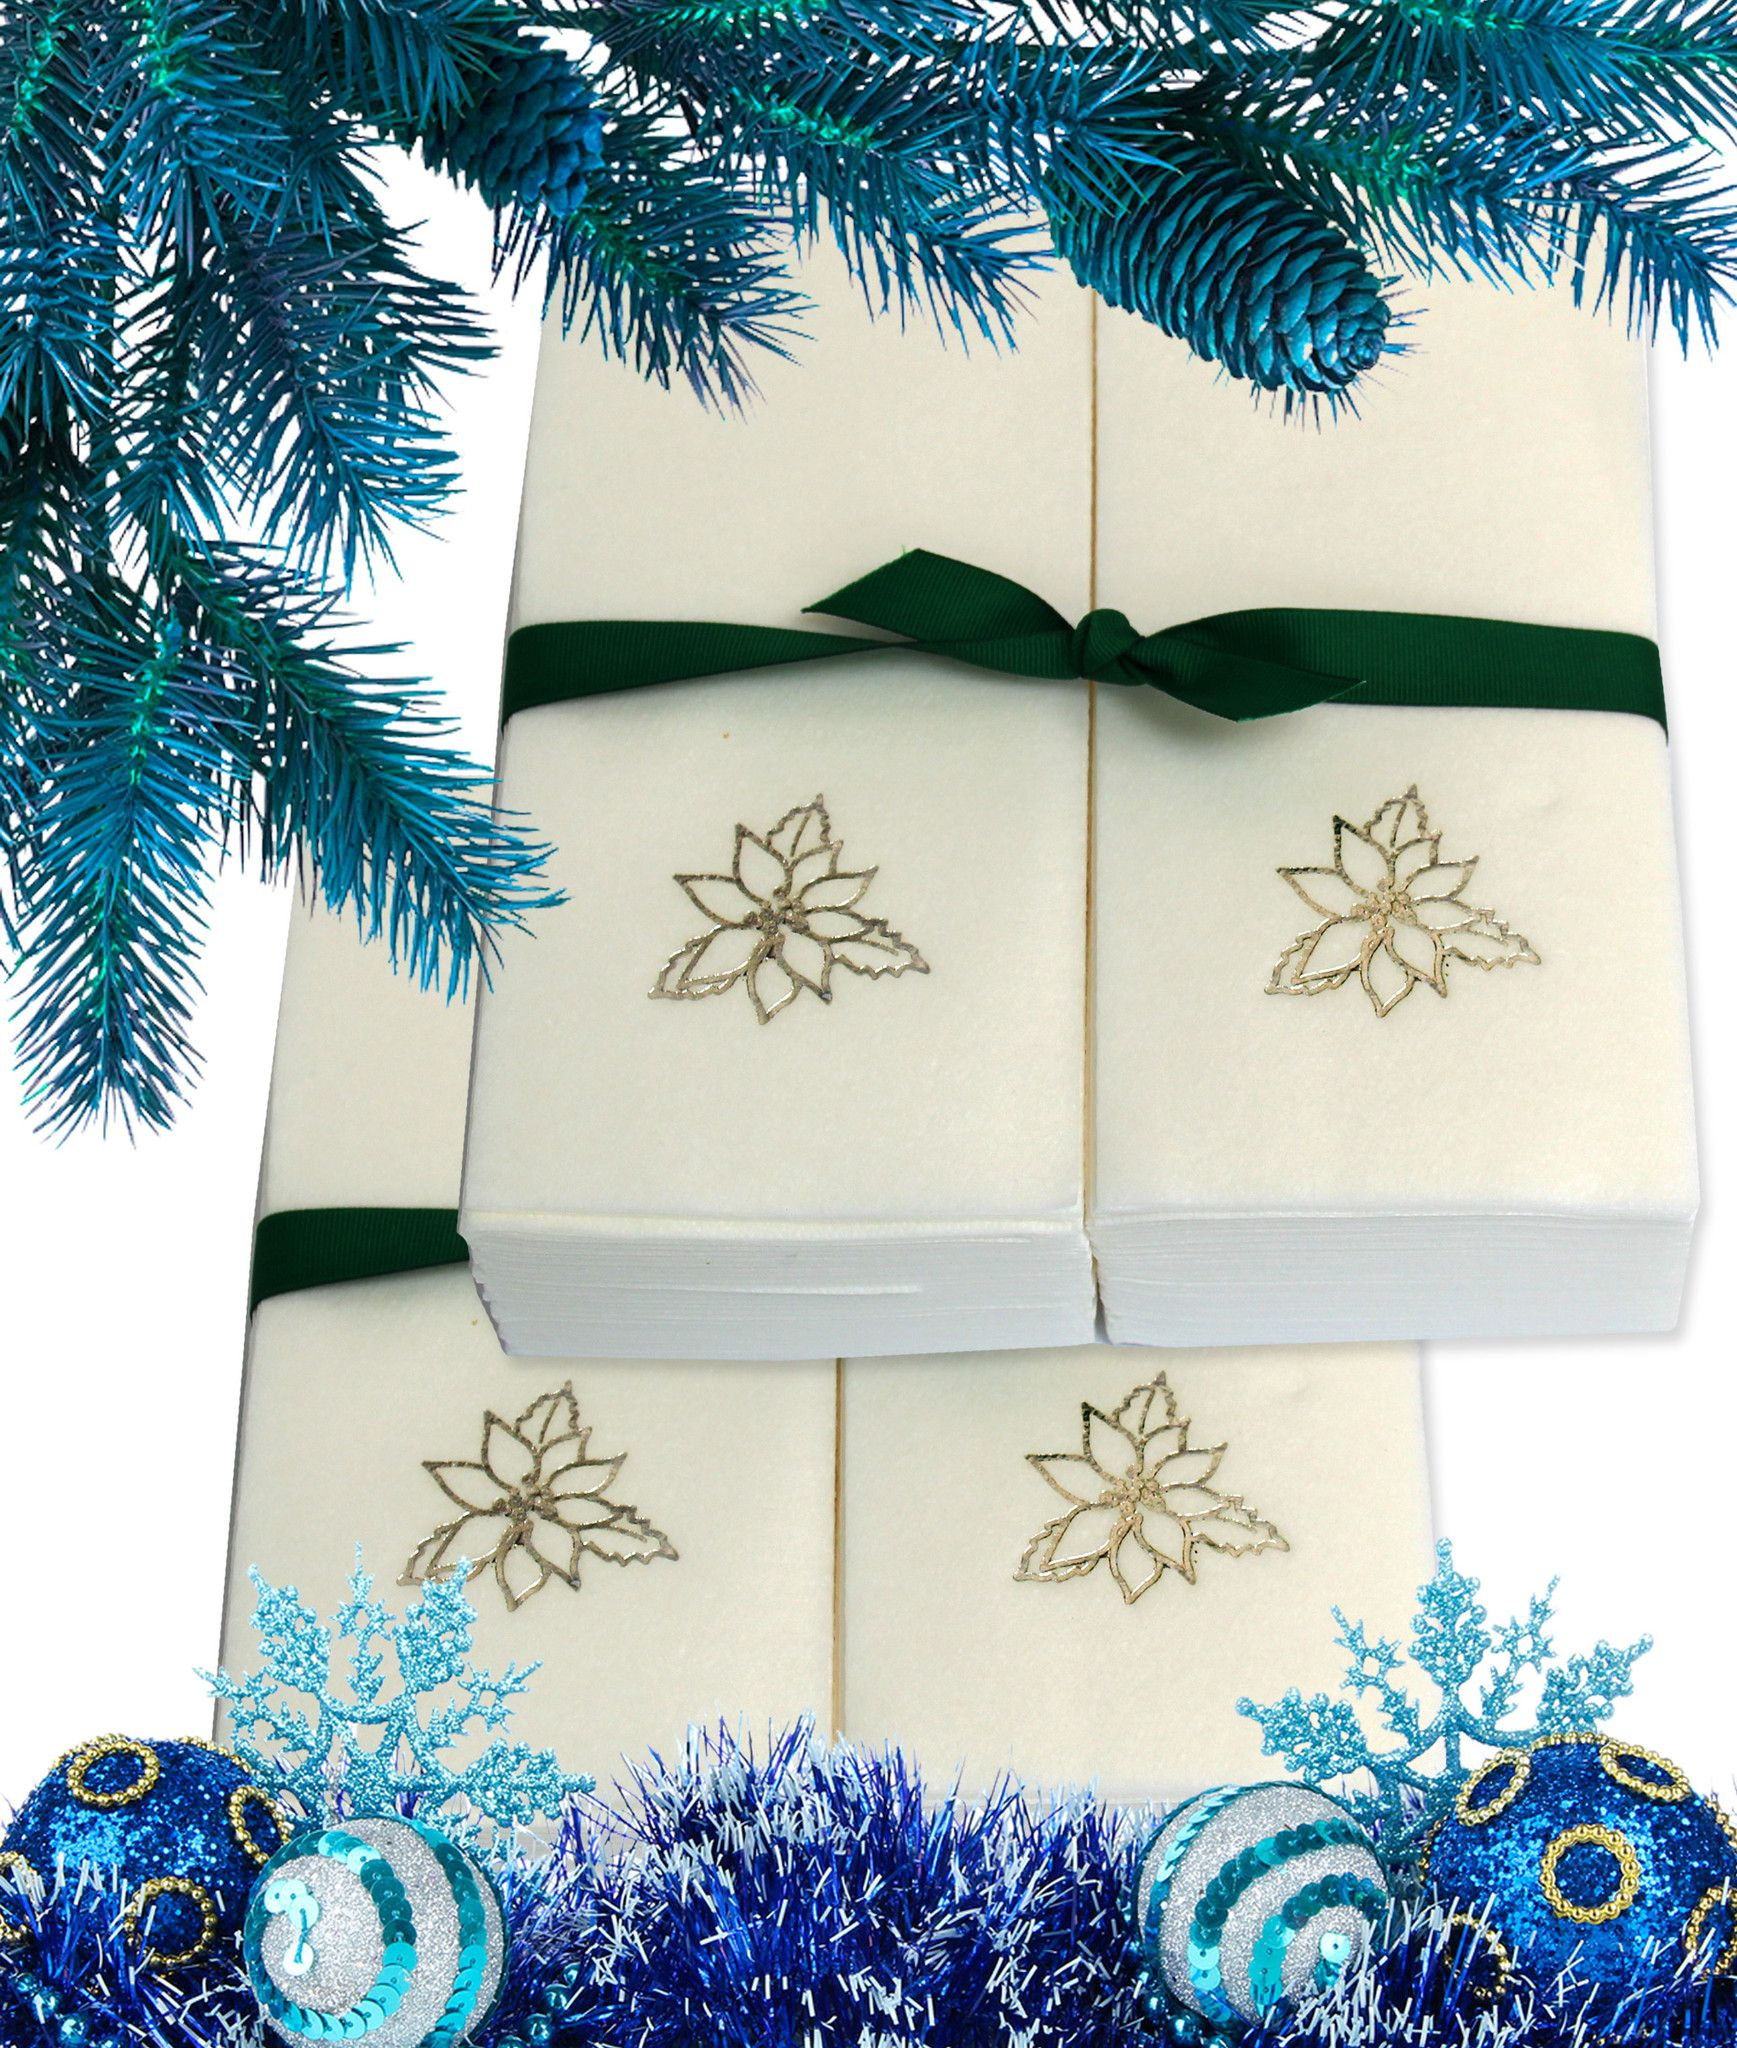 Nature's Linen Disposable Guest Hand Towels Wrapped with a Ribbon 100ct - Christmas / Holiday Collection Embossed with a Poinsettia